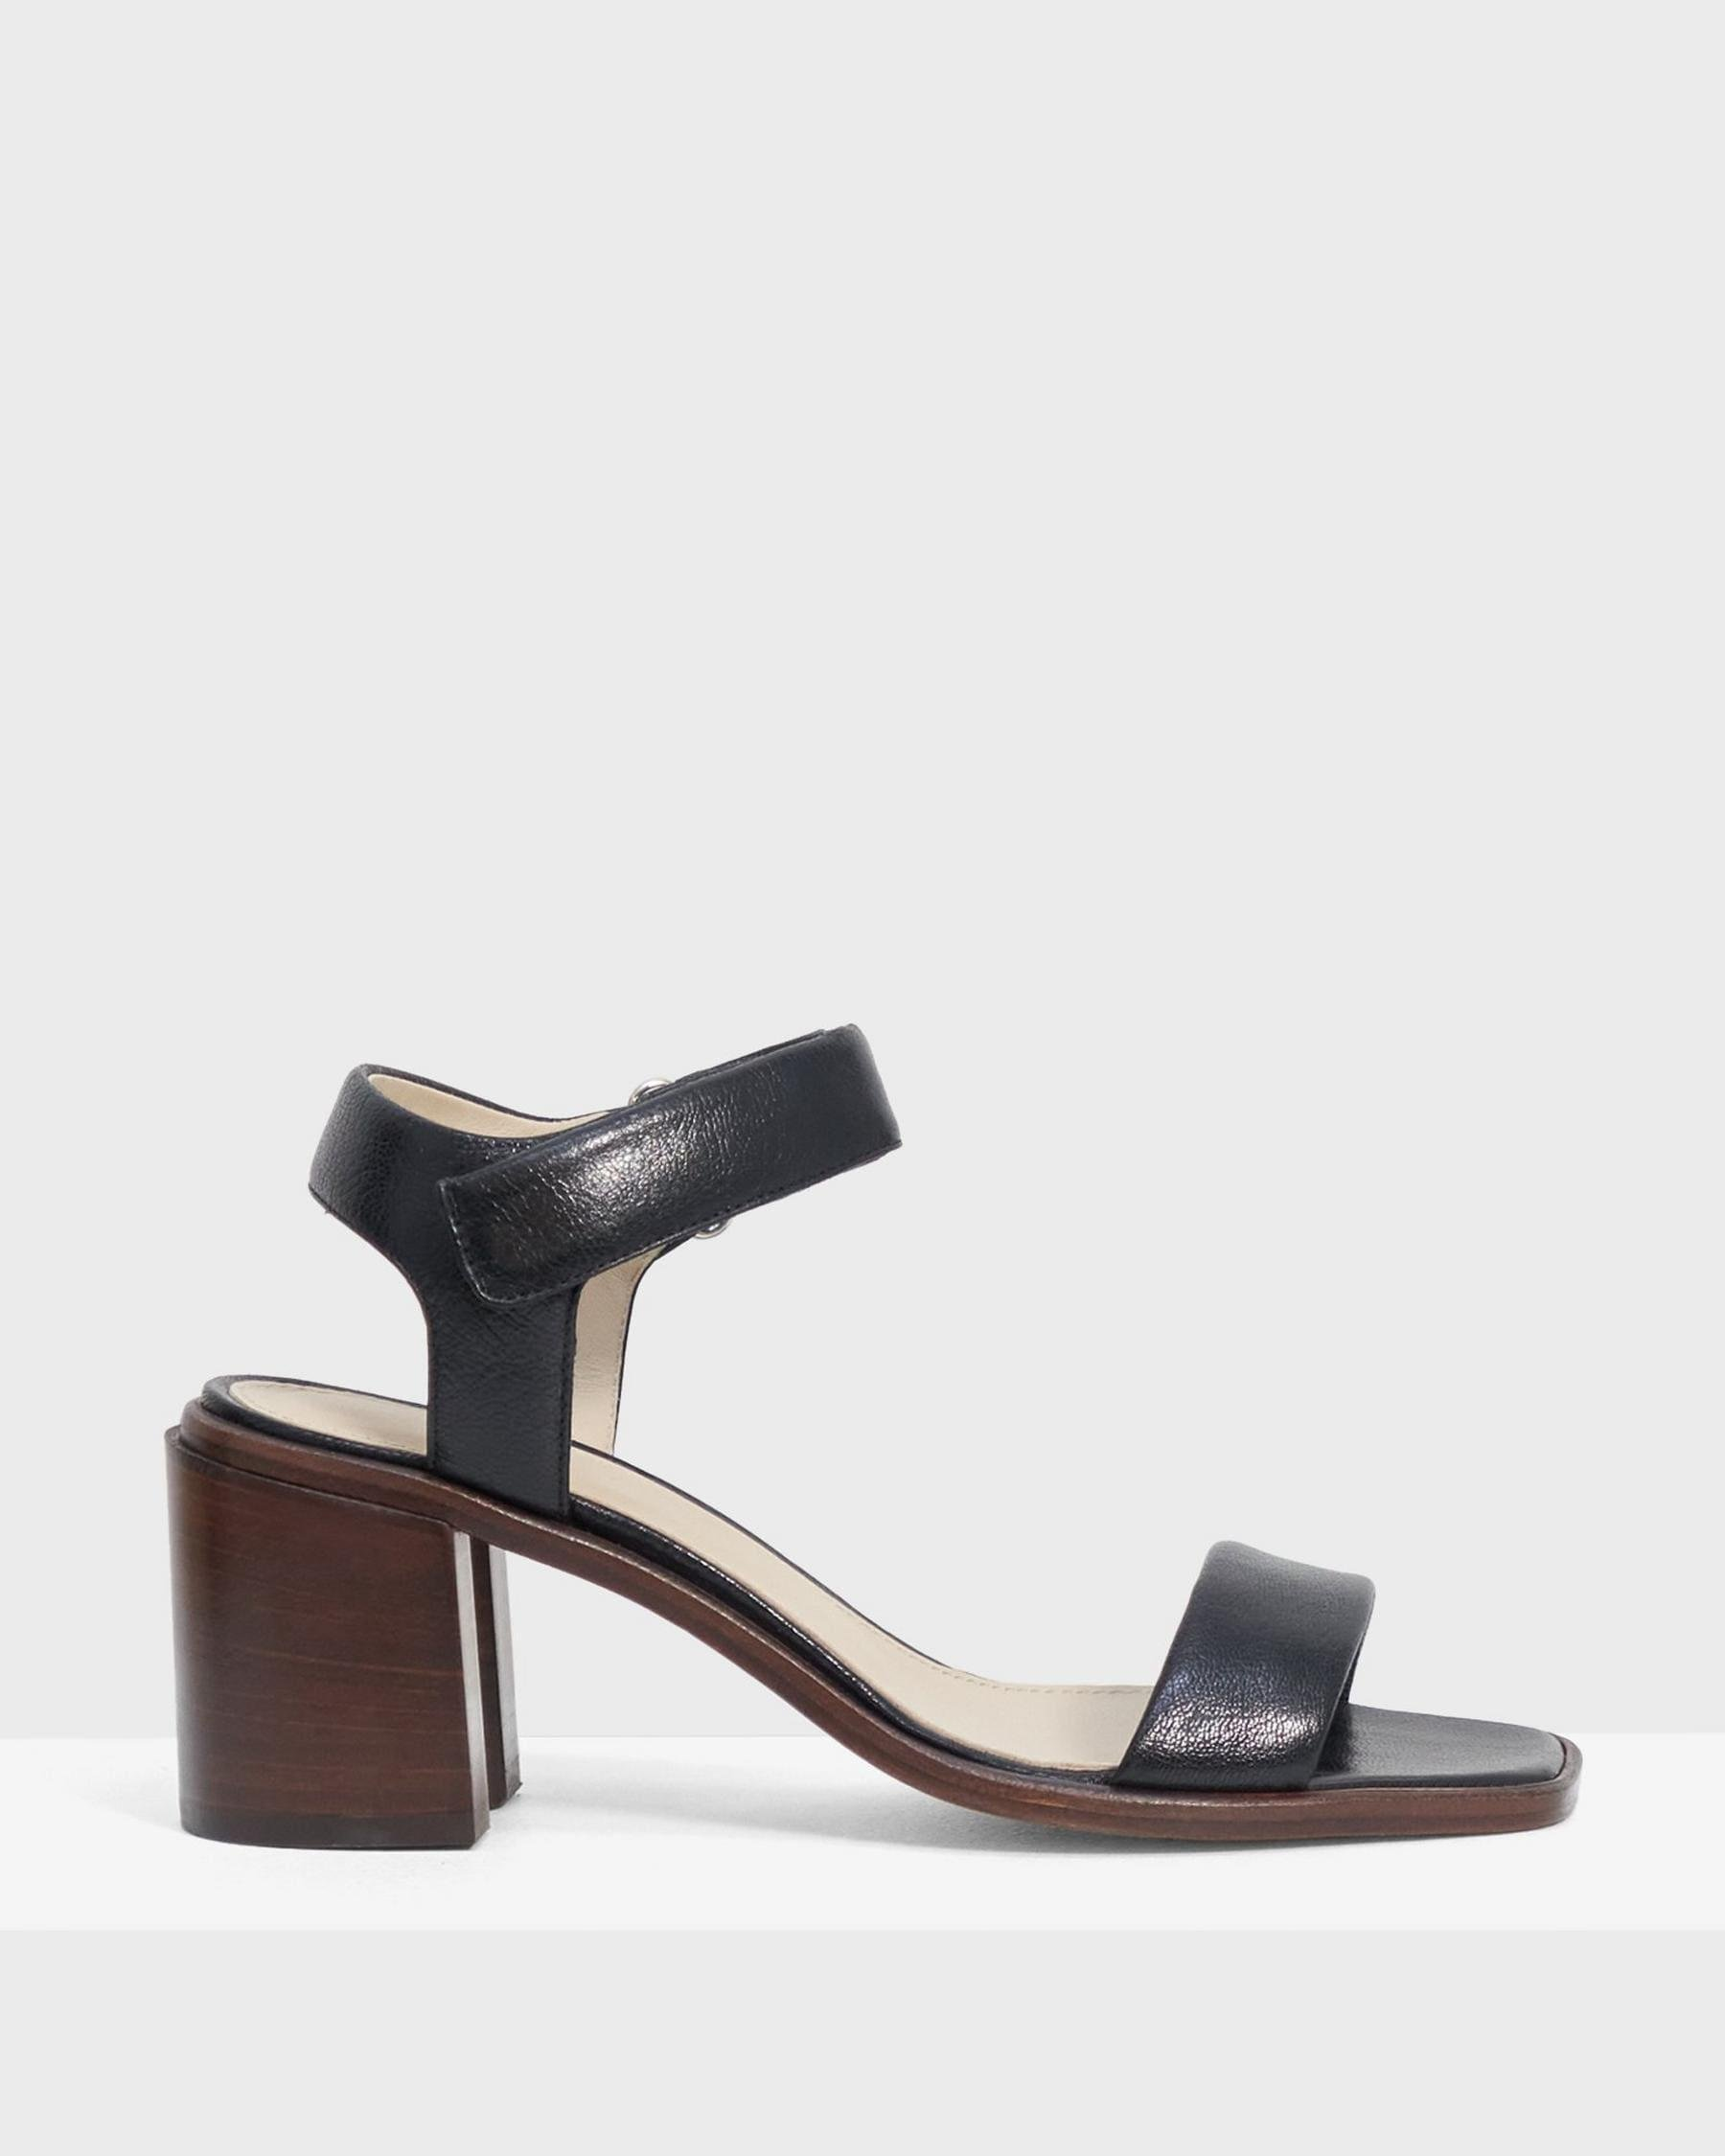 Mid-Ankle Strap Sandal in Leather 5